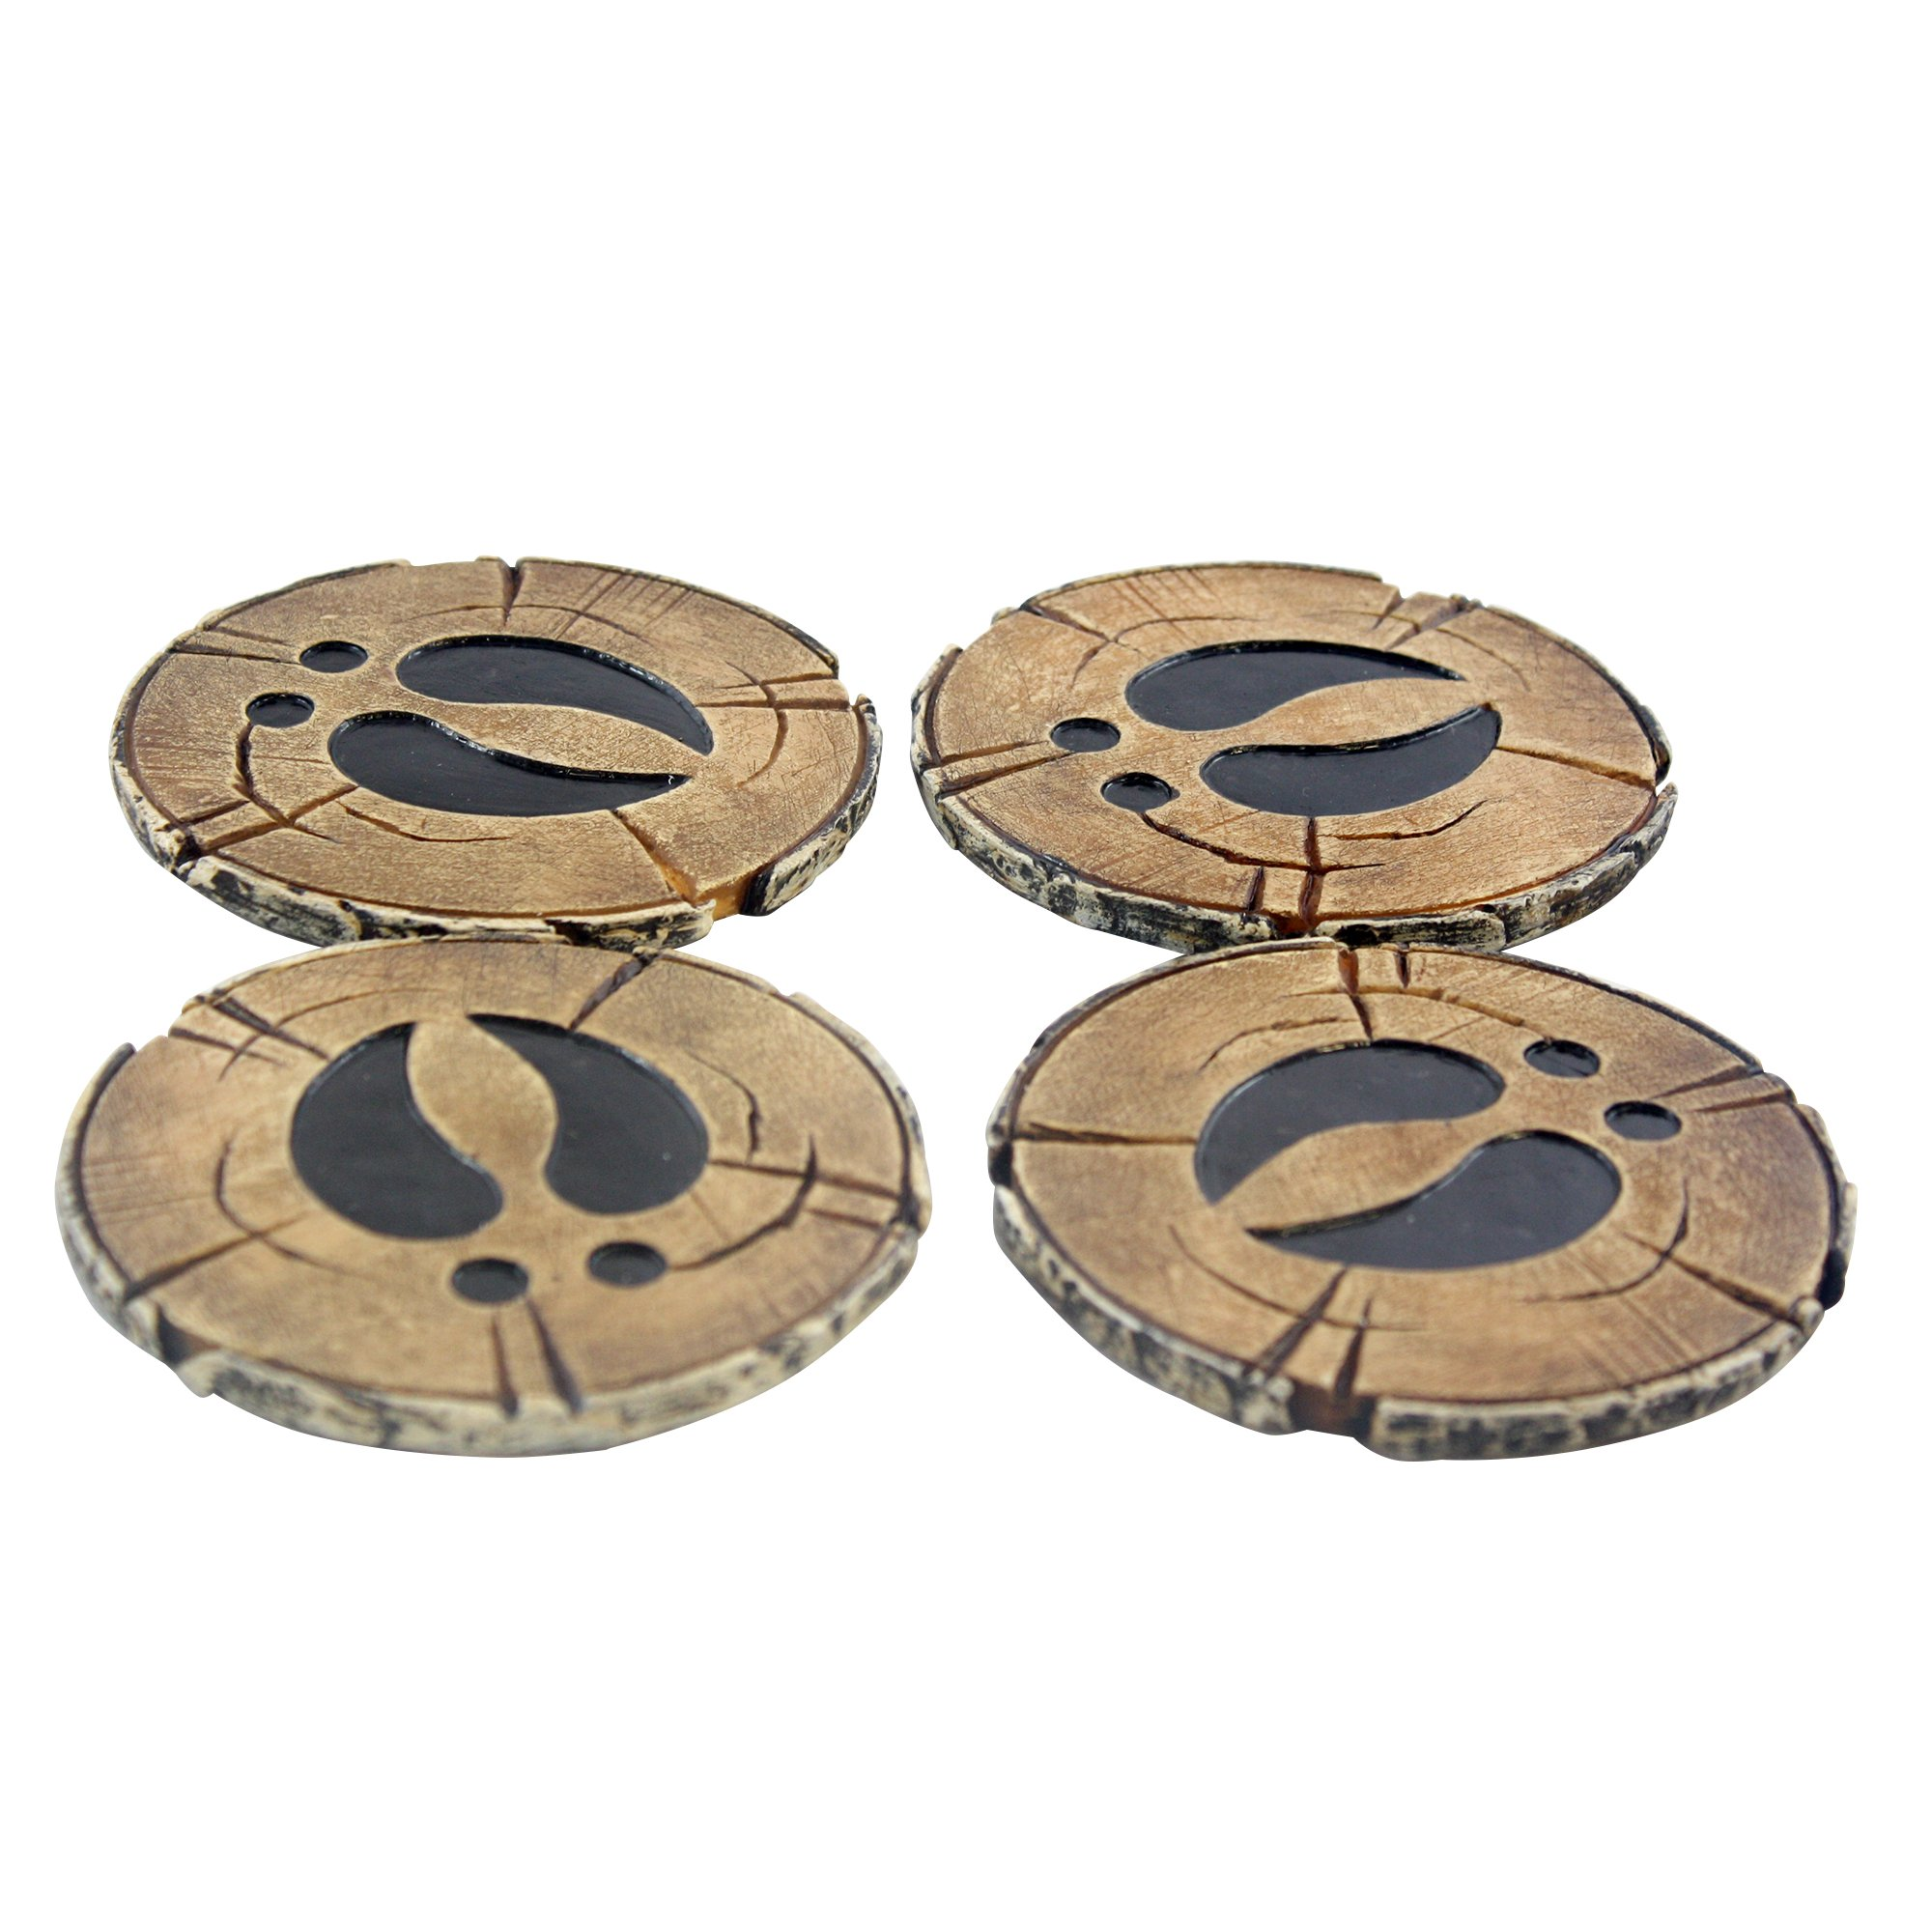 Pine Ridge Old West Deer Antler Drink Coasters Set Of 4 - Home Table Beverage Coaster With Holder - Drink Glass Holder With Outdoors Rustic Cabin Theme Decor by Pine Ridge (Image #6)